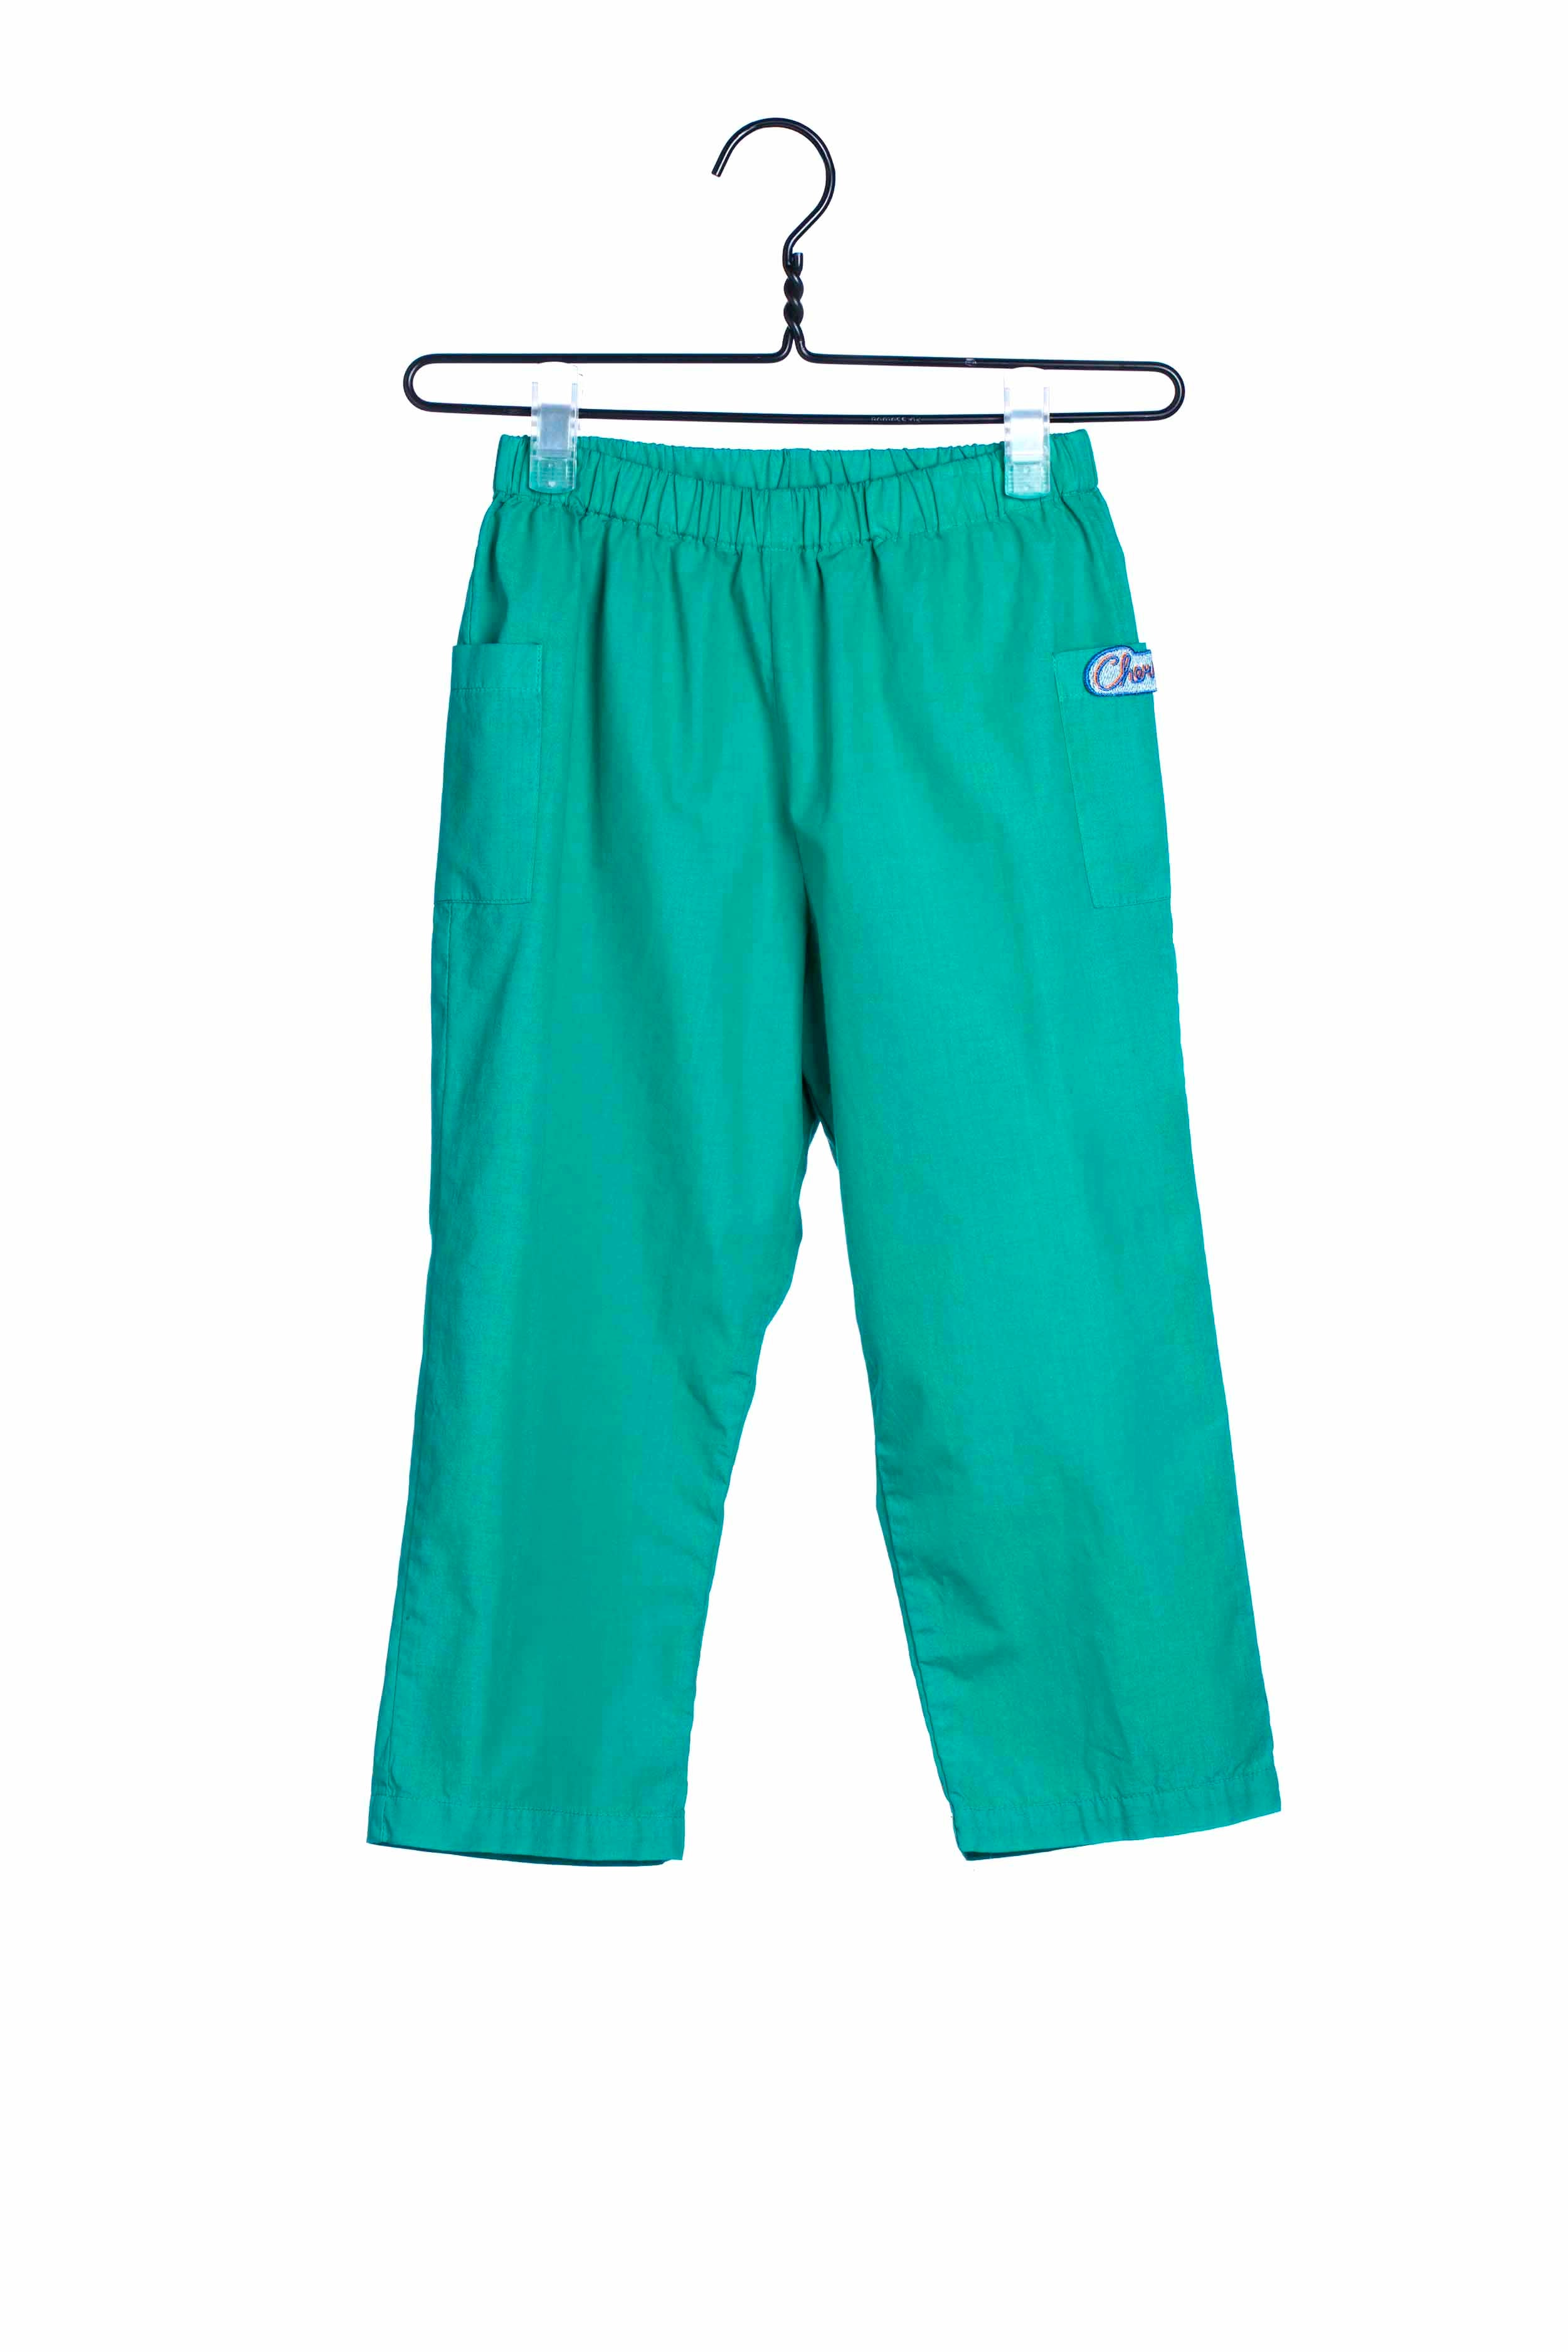 1730 Pocket Pants - Green